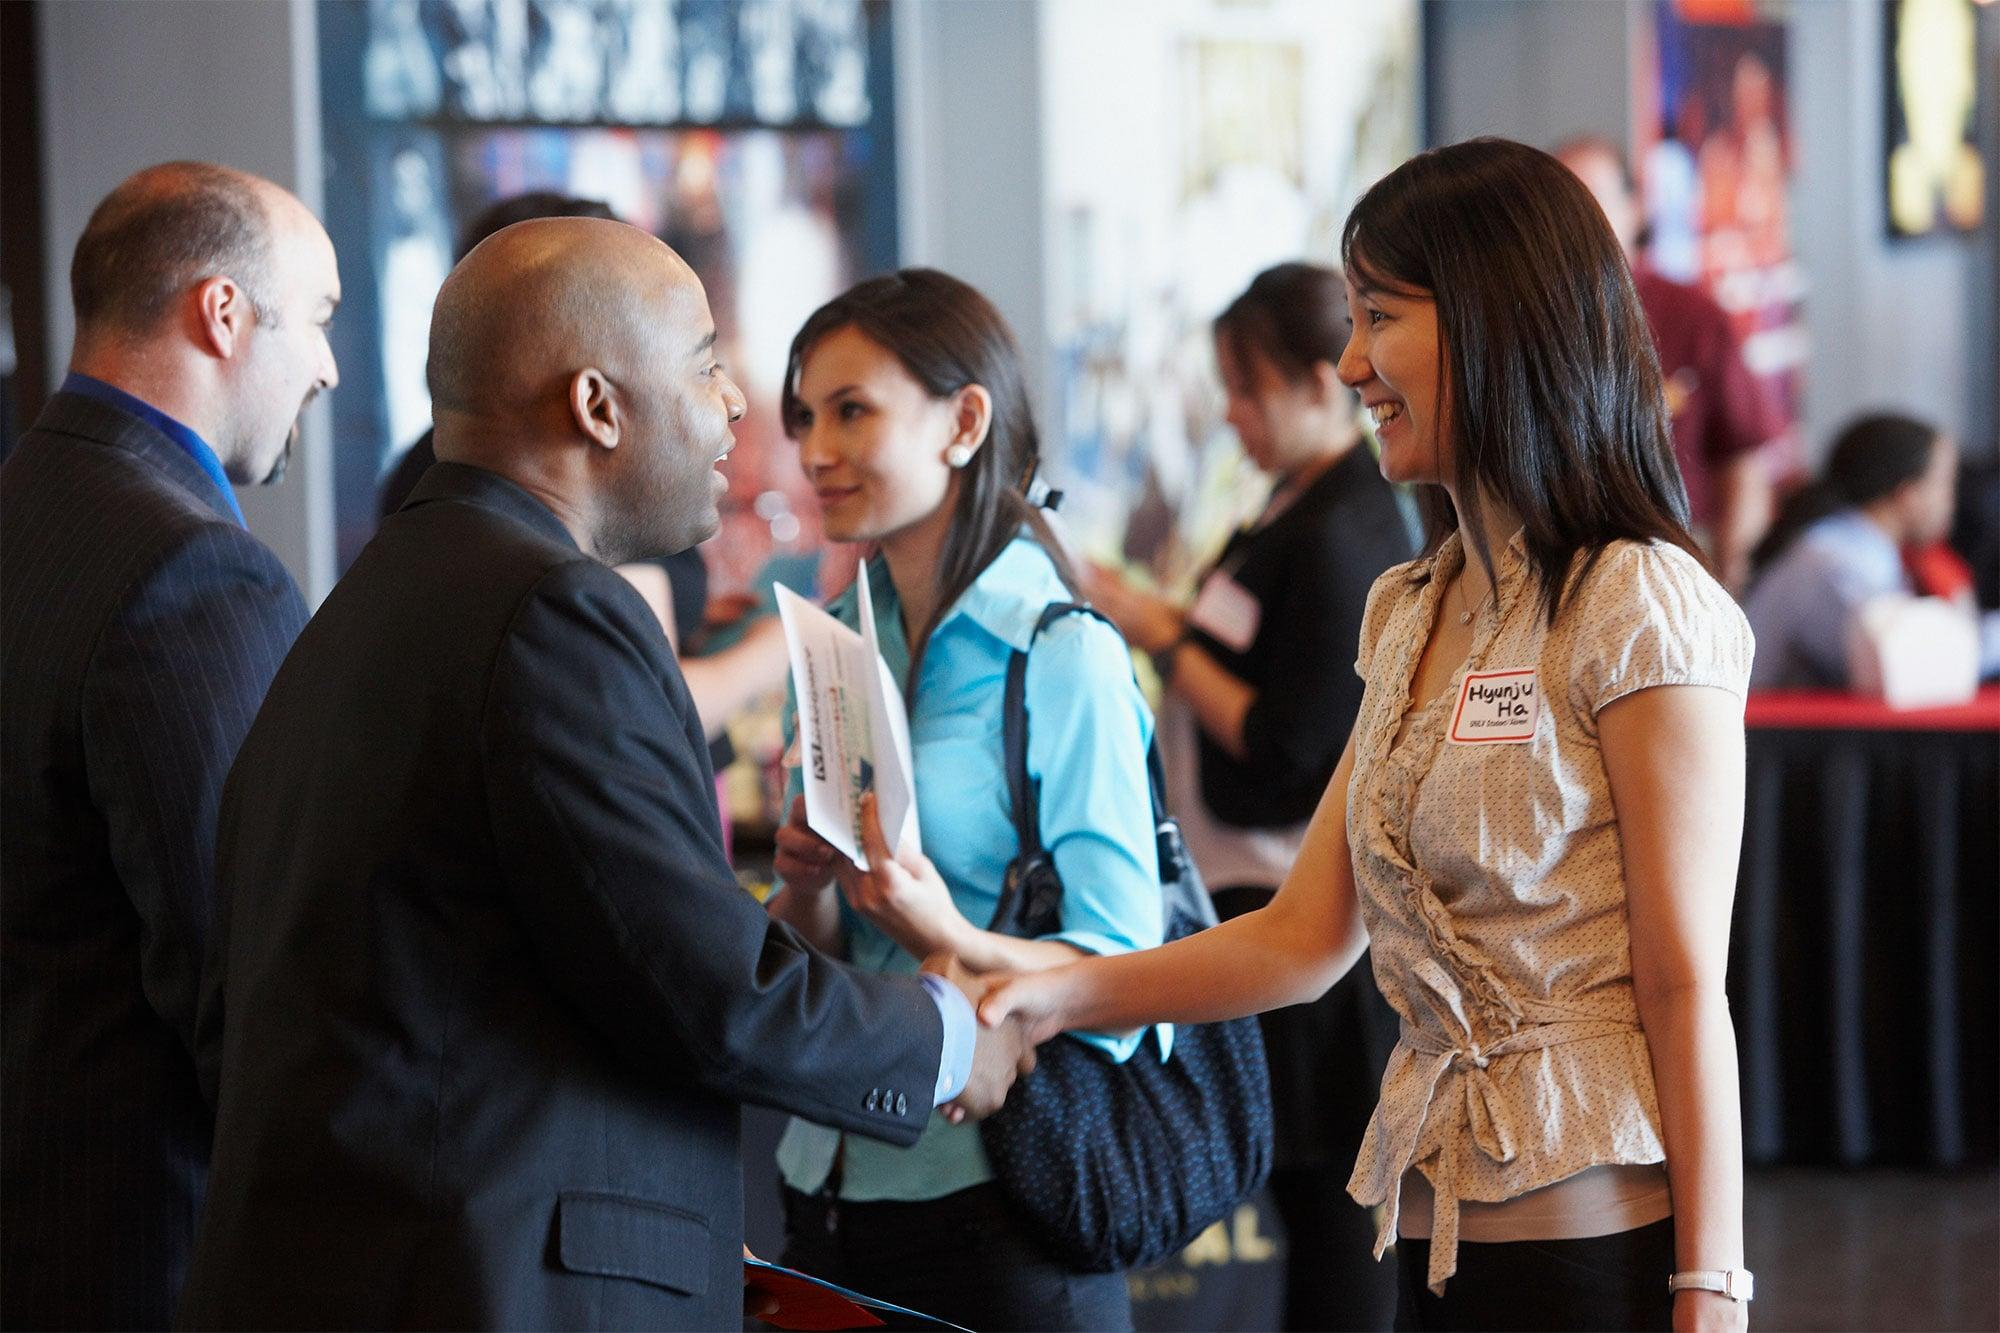 Man shaking a woman's hand in a group.